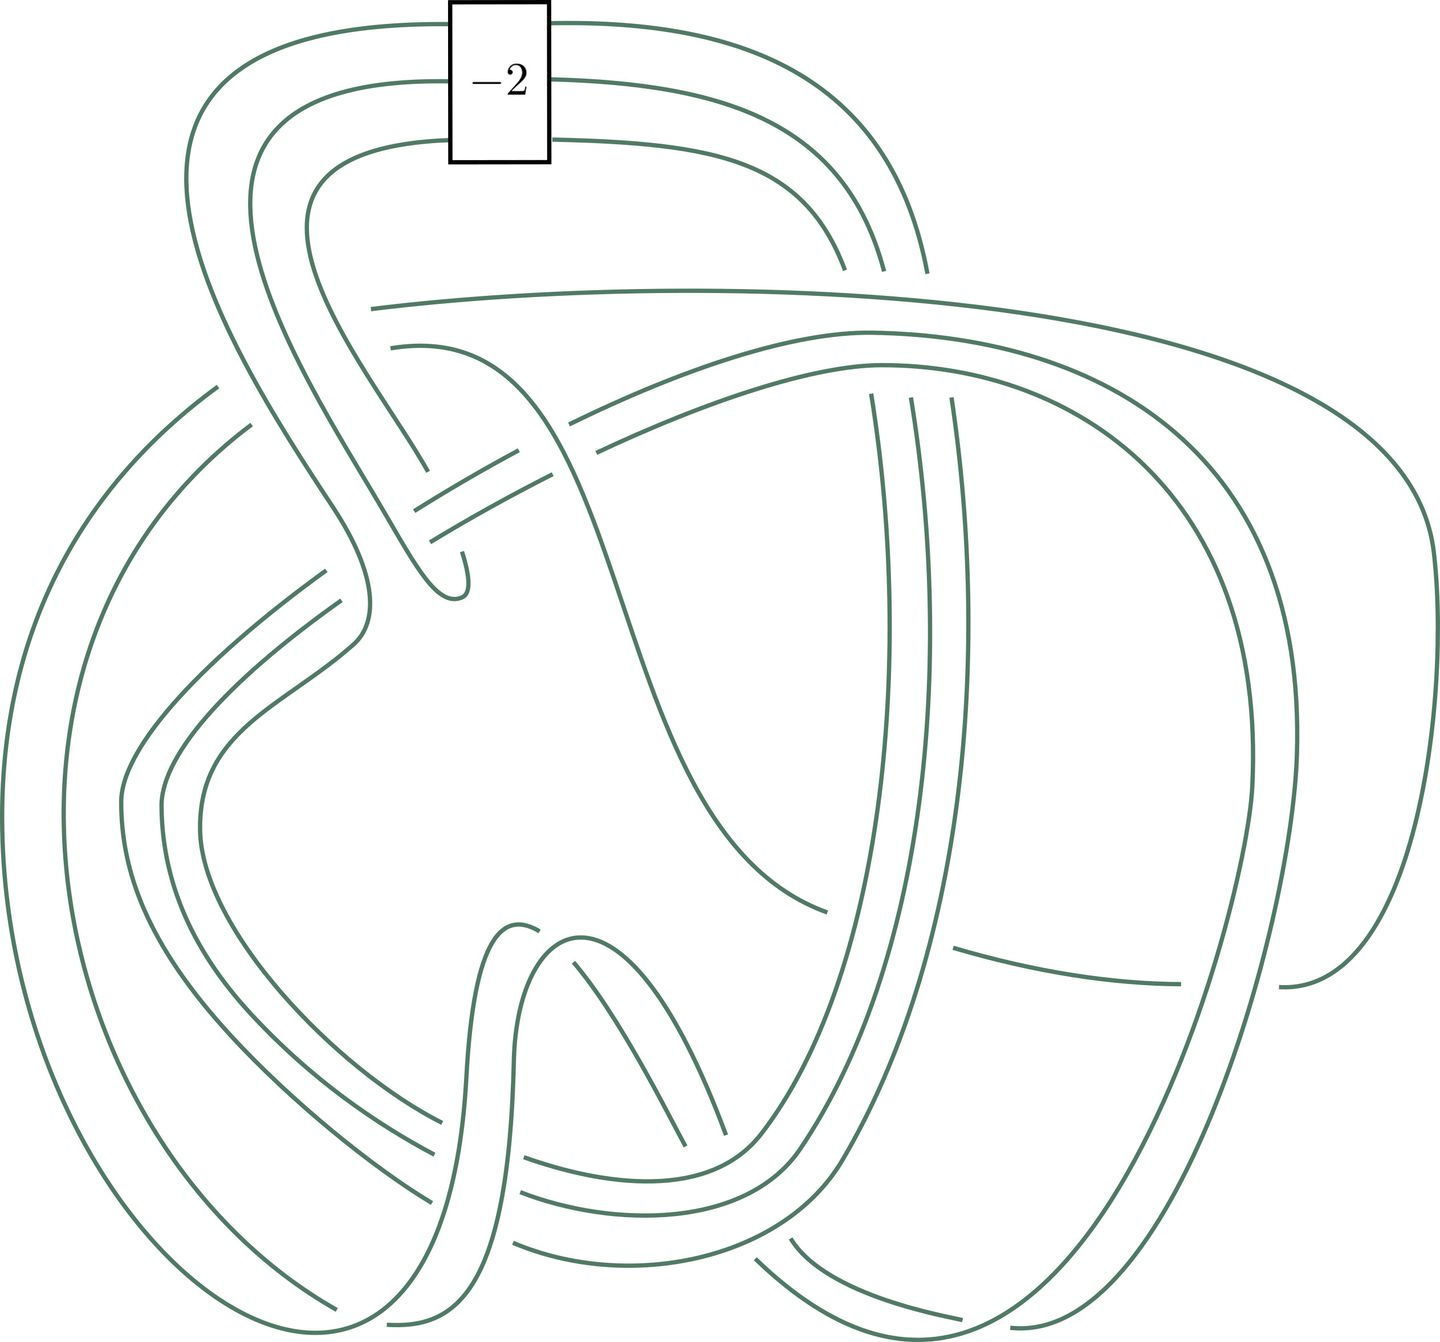 Piccirillo�s rendering of the knot she created to               solve the Conway knot problem.